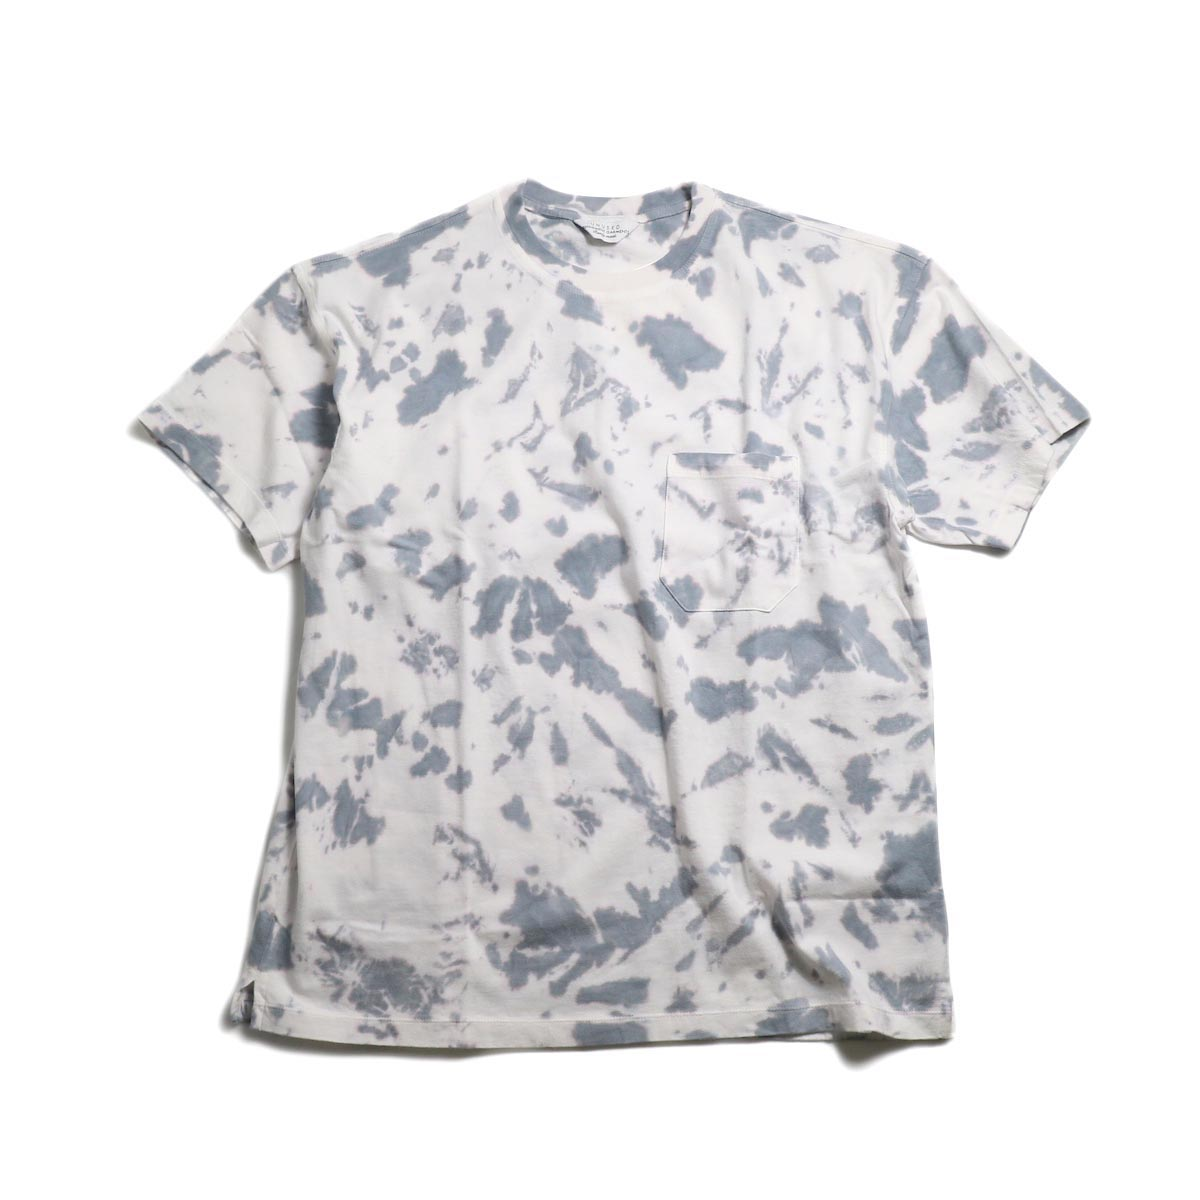 UNUSED / US1625 Tie Dye Tee -White